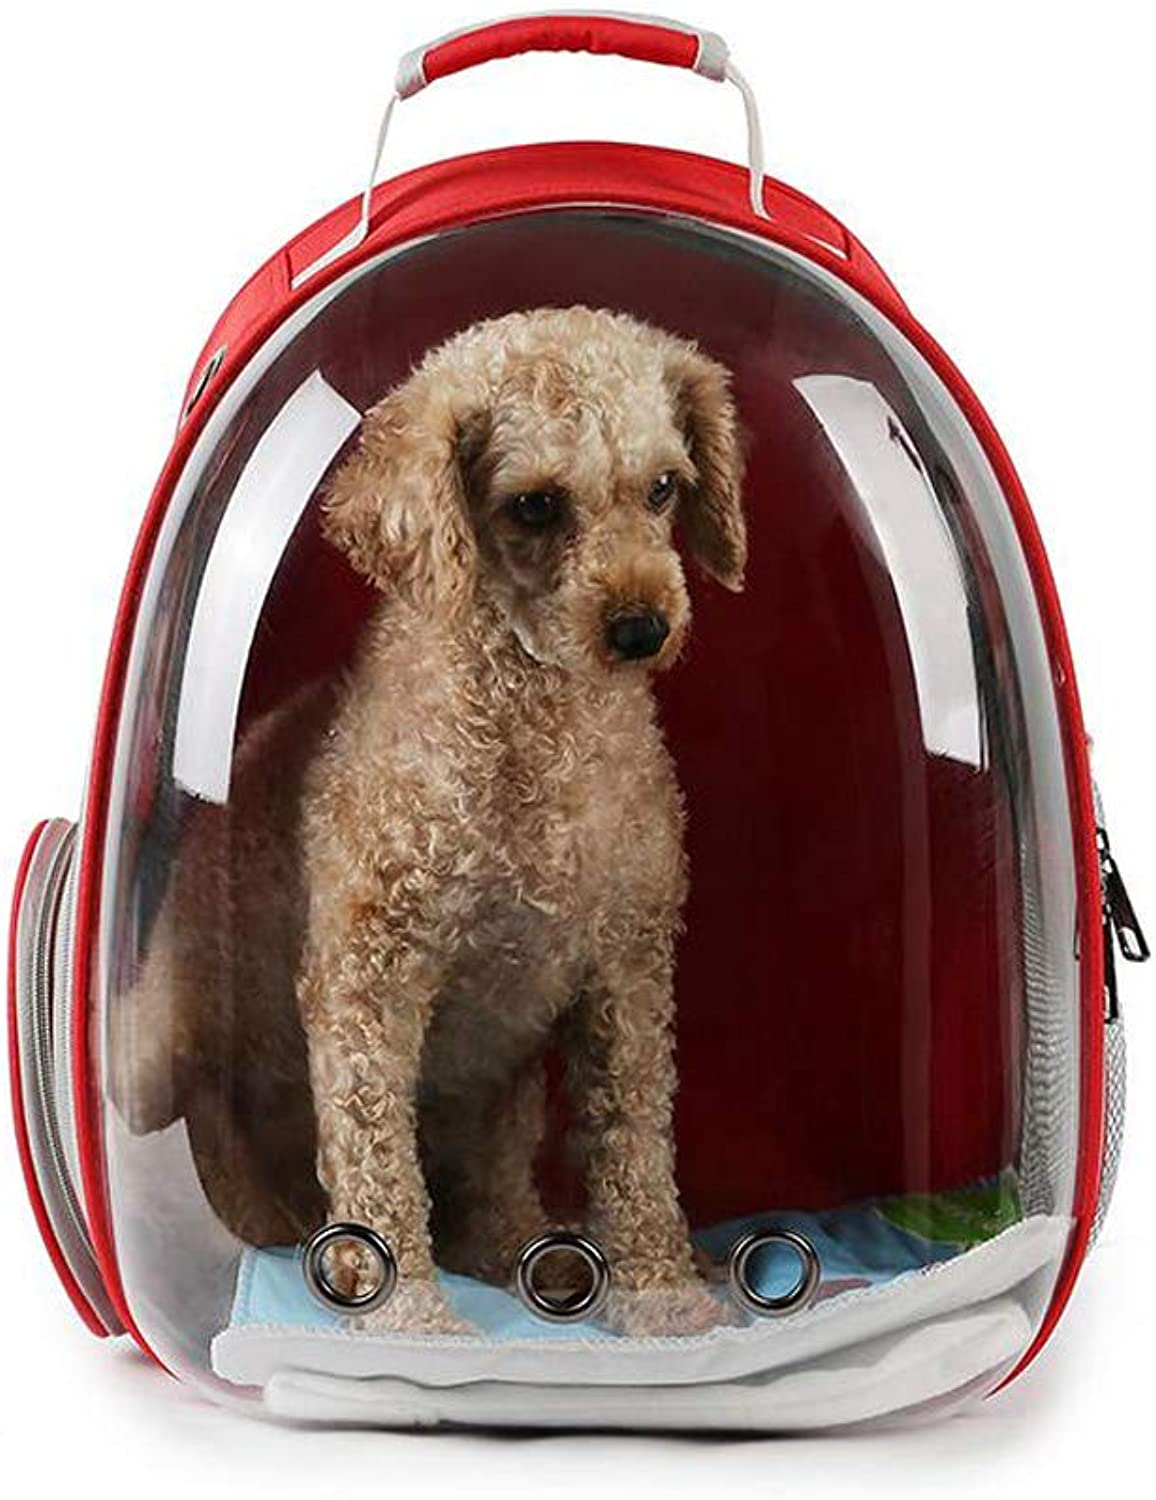 180° Space Capsule Pet Backpack, PVC Waterproof and Breathable Comfortable Pet Chest Backpack, Carrying Dogs, Cats, Small Animals,Red